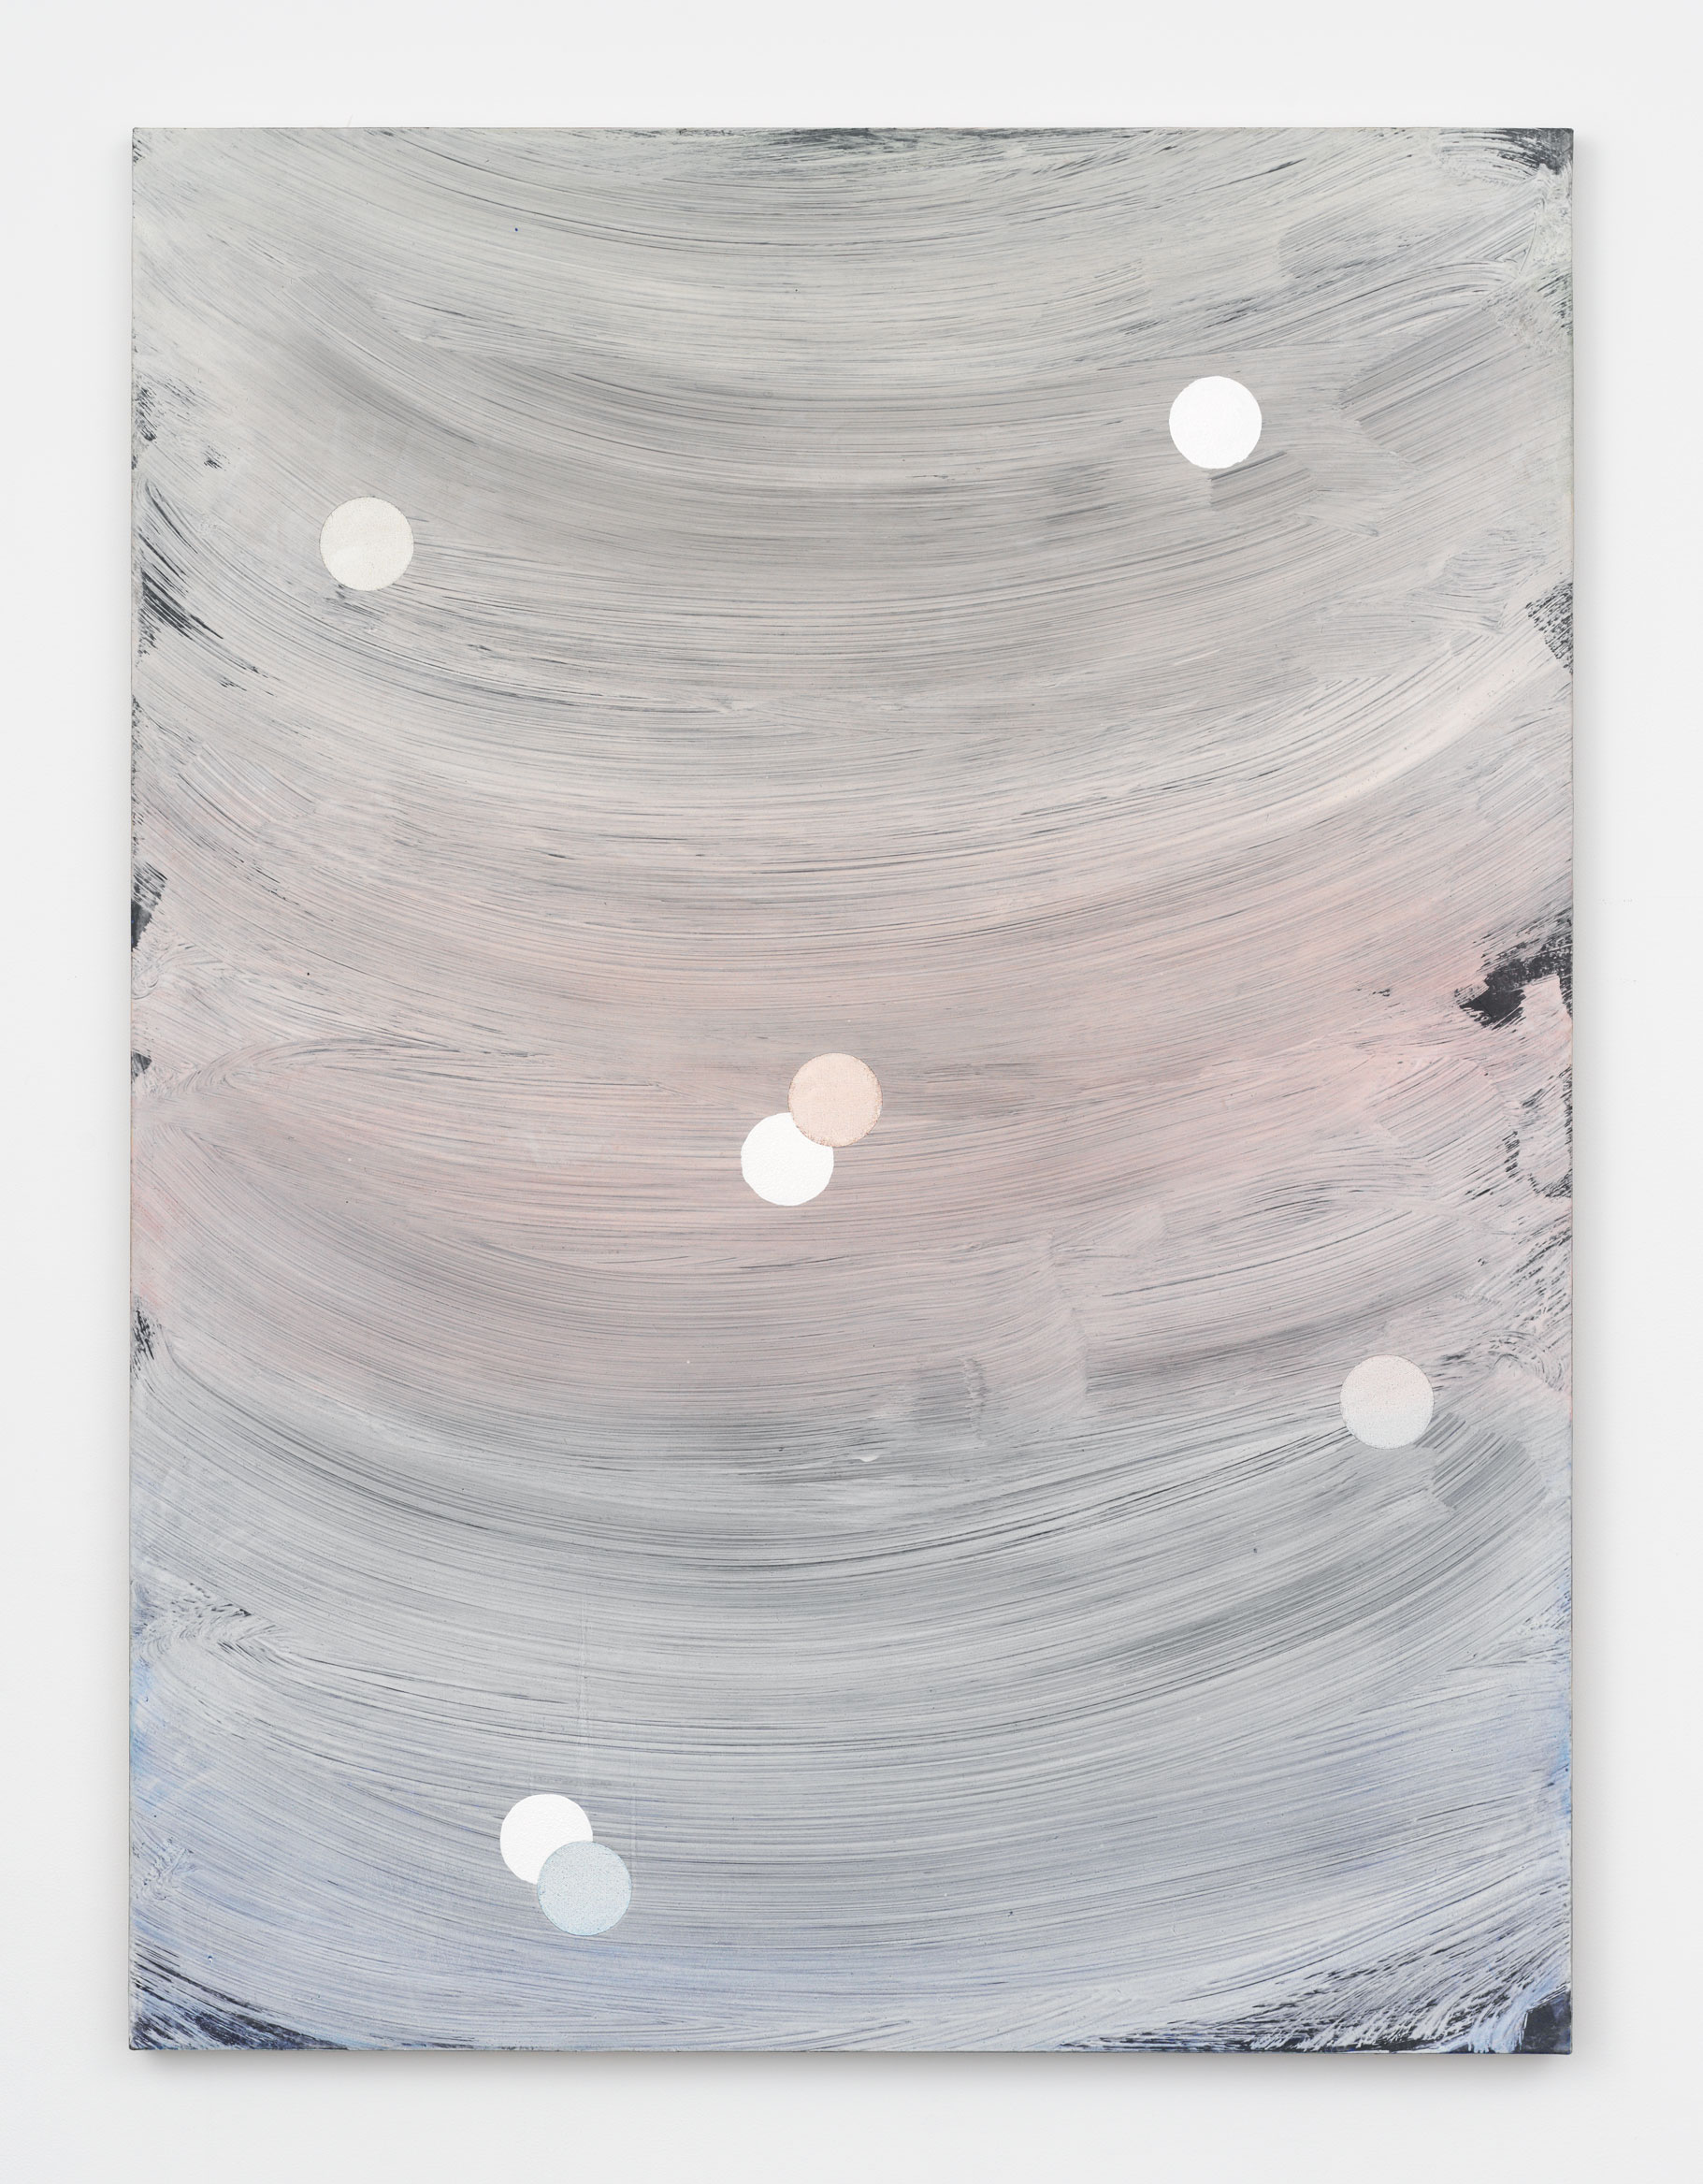 Alex Kwartler, Untitled, 2019, oil and plaster on canvas, 48h x 36w in.